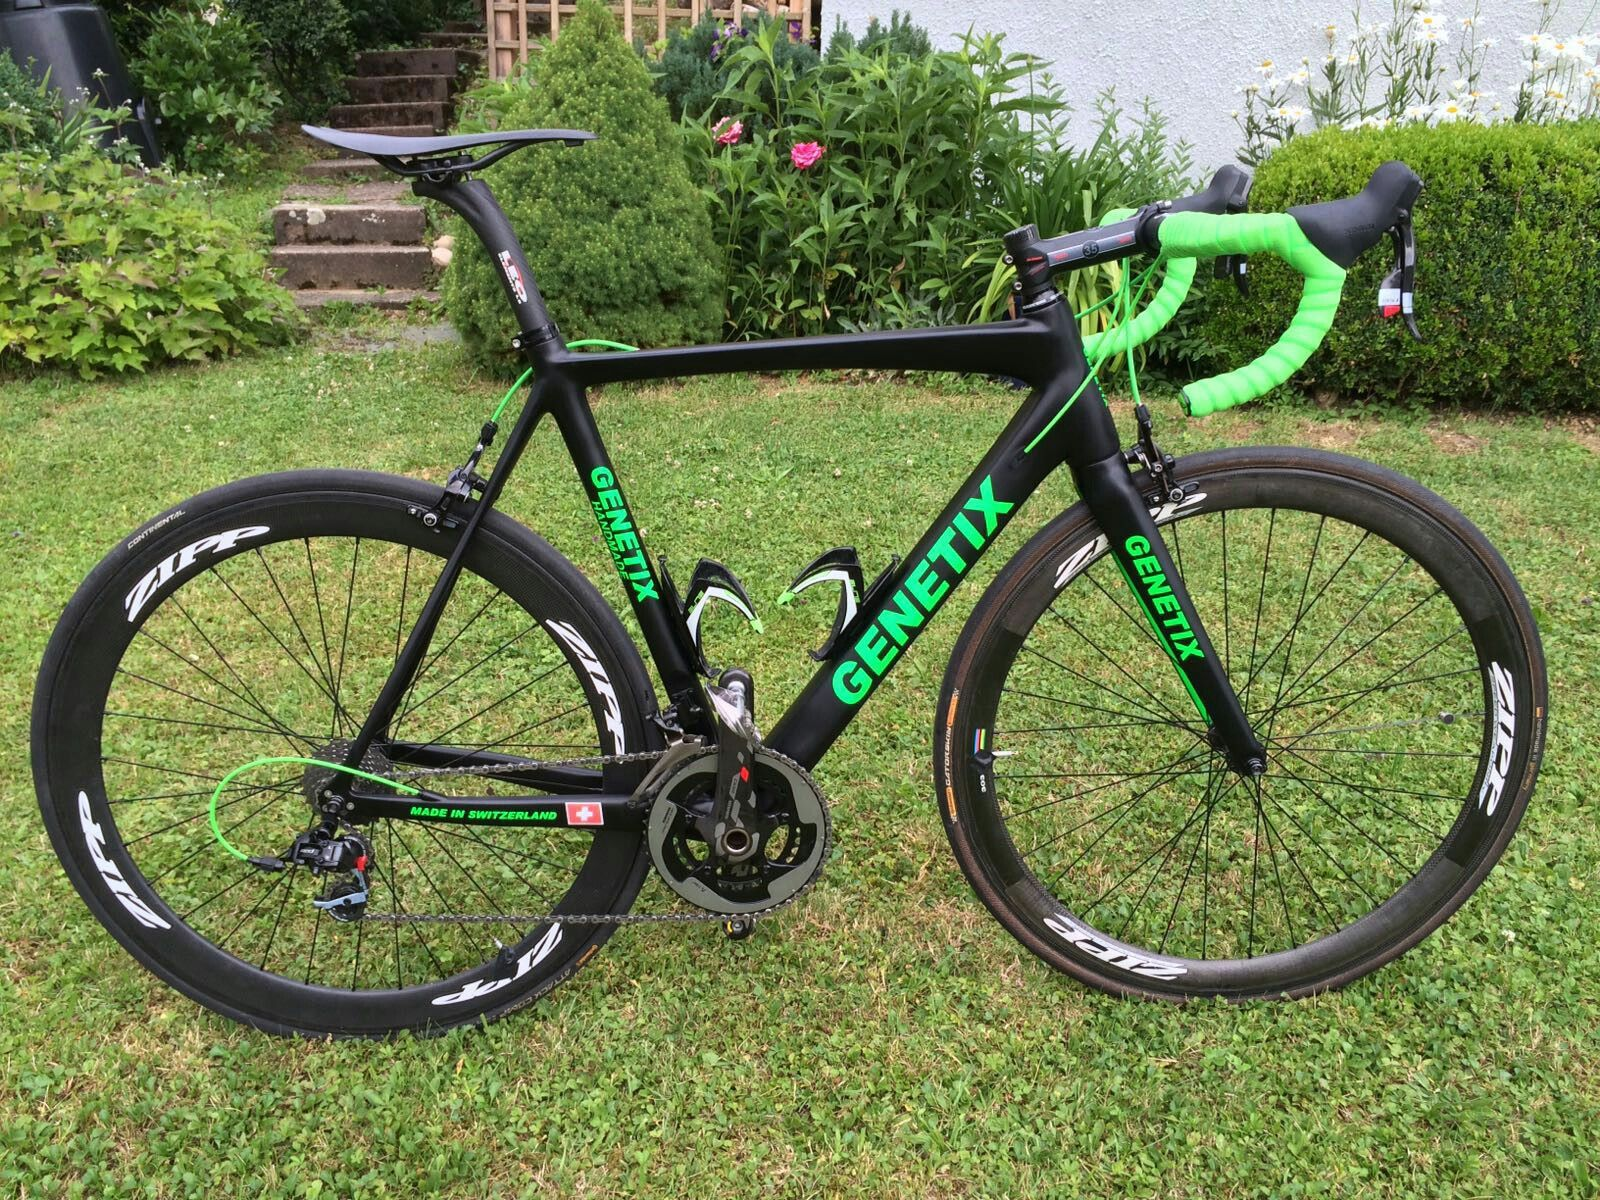 Genetix CR1 Carbon Rahmen mit Sram Red | Genetix CR1 green ...